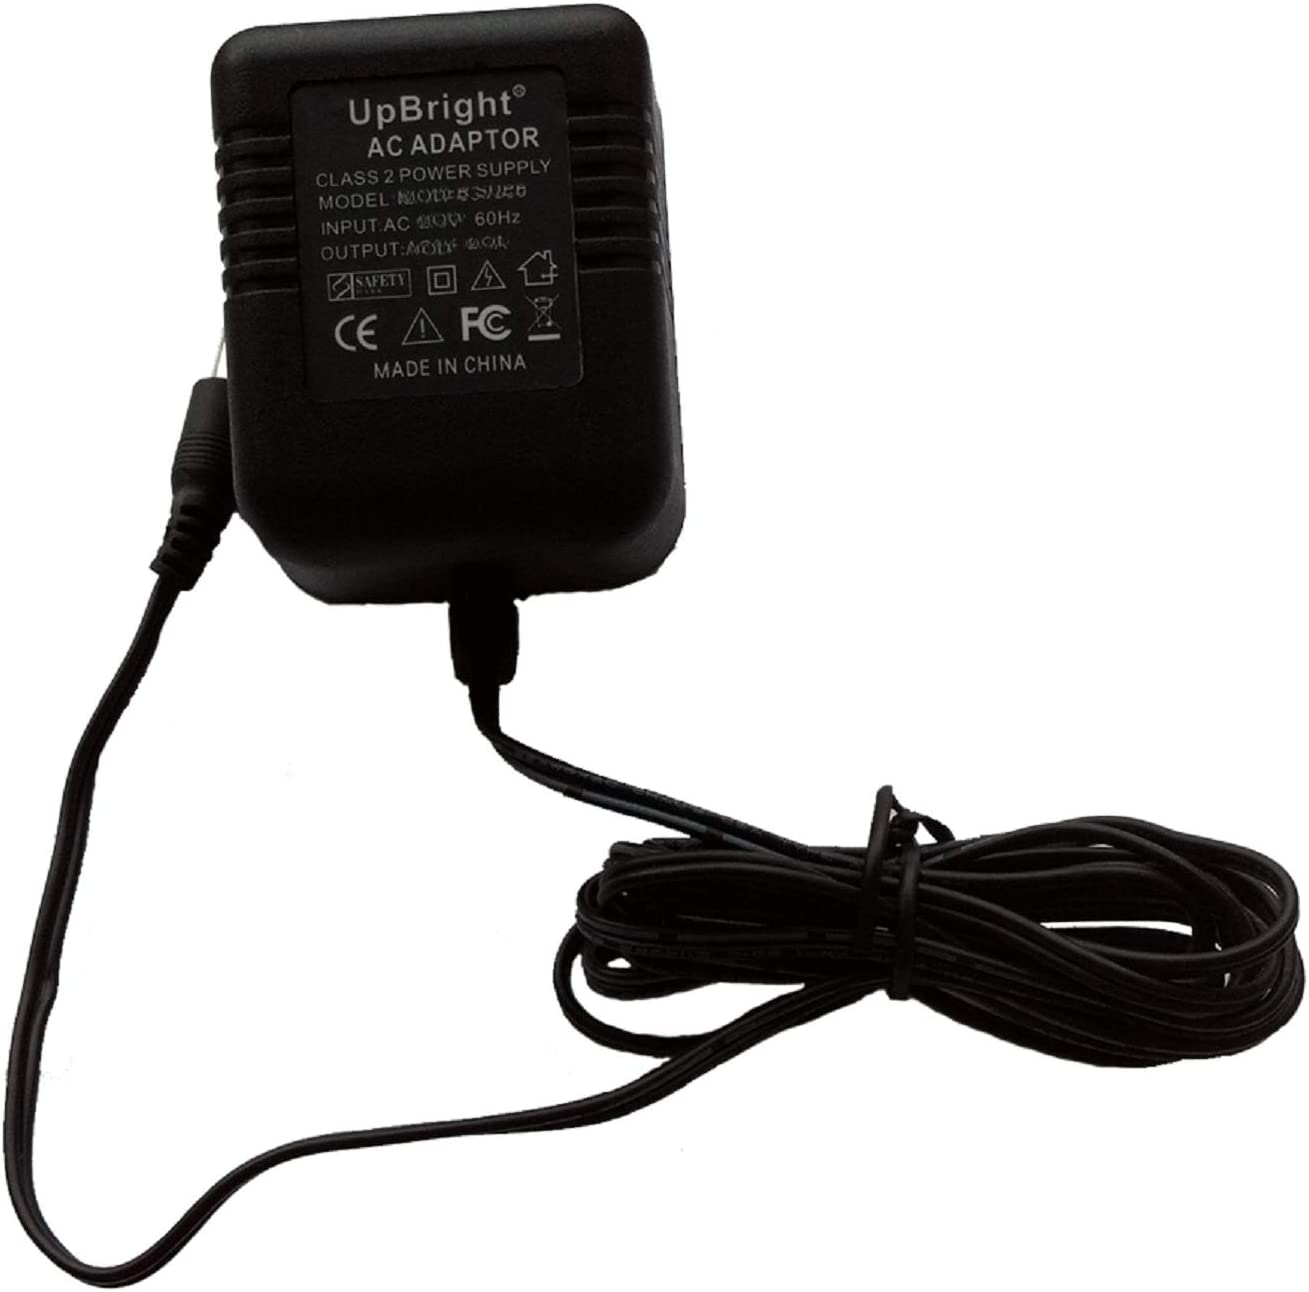 UpBright 24V AC/AC Adapter Compatible with Model: QBA-24V950-IP20 QBA-24V850-IP20 QBA-24V1000-IP20 QBA-240048-IP20 QBA-24V350-IP20 ChangZhou Qibo 24VAC Power Supply Charger (with Female Jack Connector